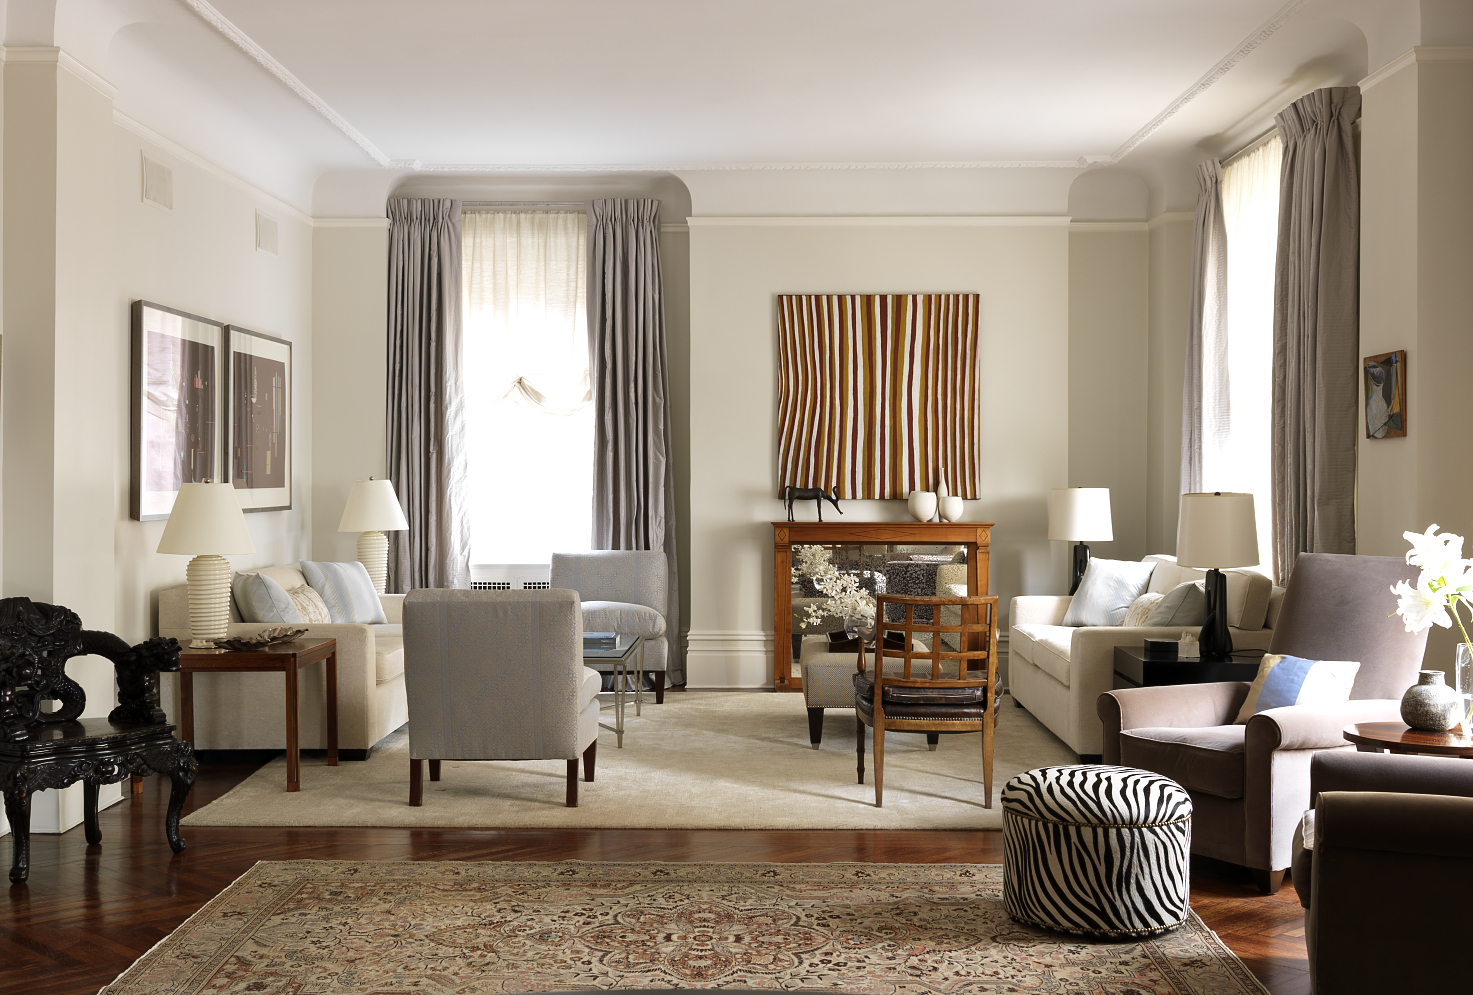 Top NYC Interior Designers - Katie Lydon Interiors - living room - luxury interior design